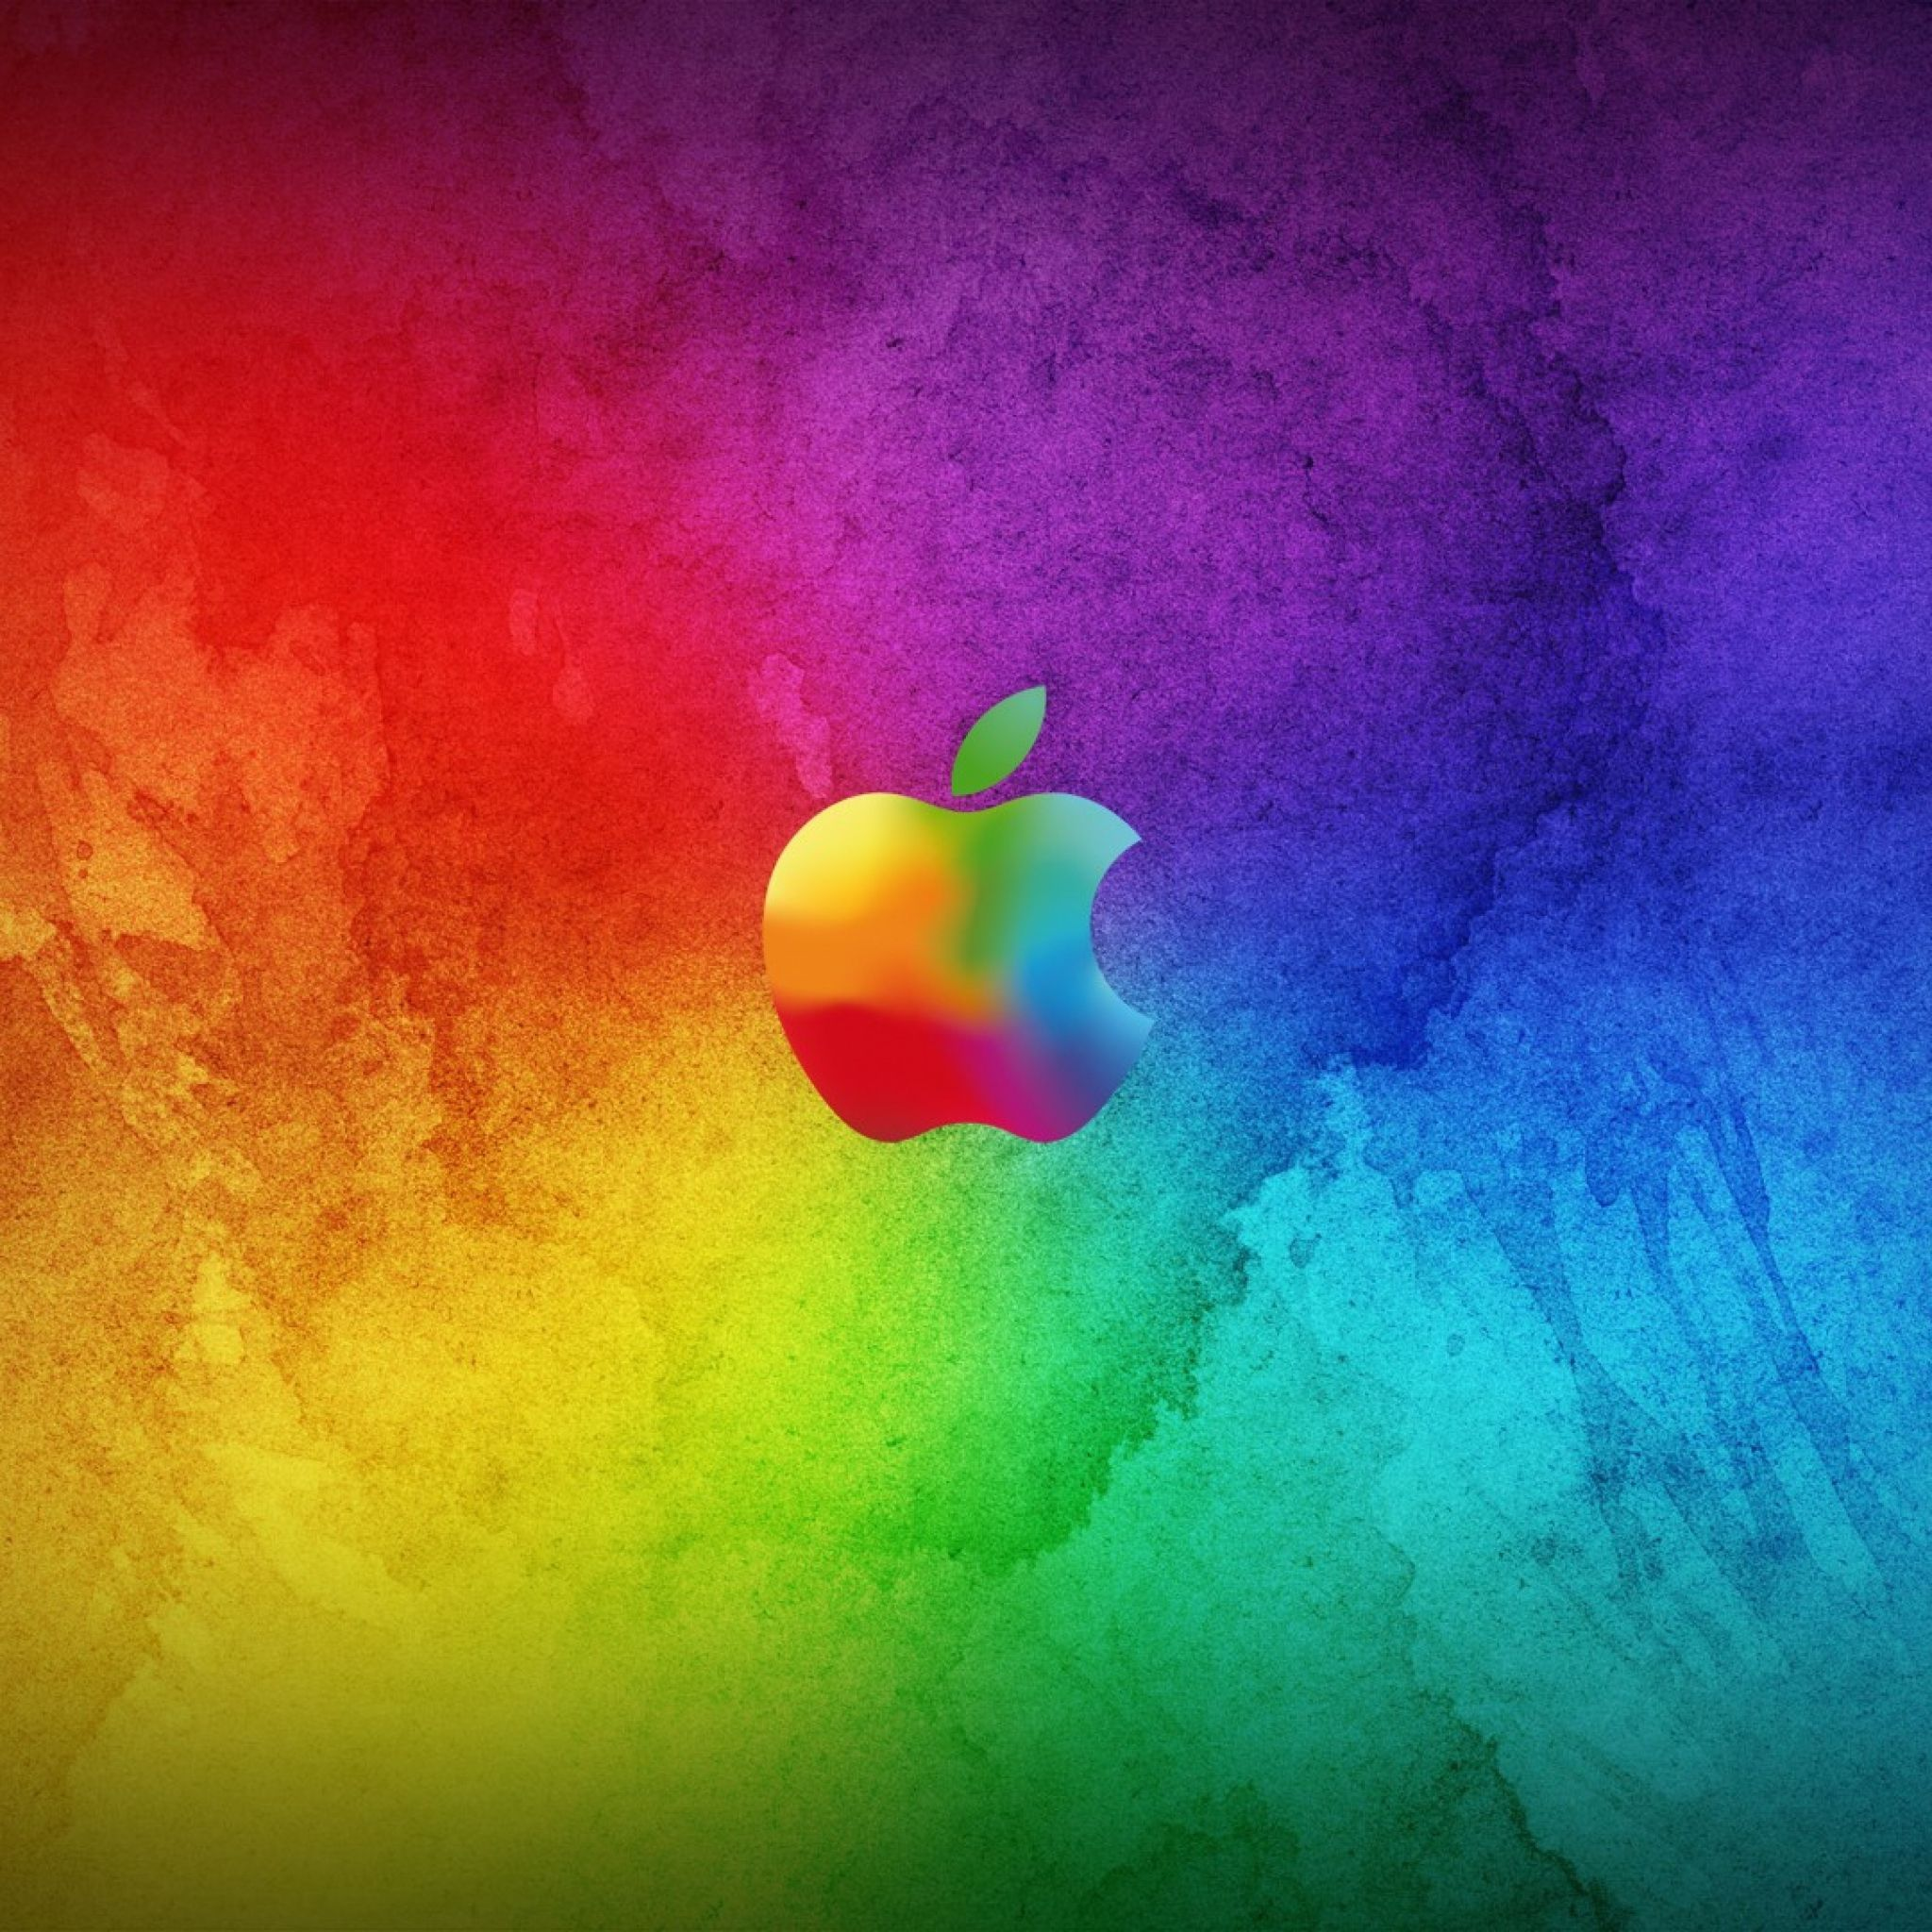 Colorful Iphone Wallpaper: 2048x2048 Wallpaper Apple, Colorful, Background, Brand